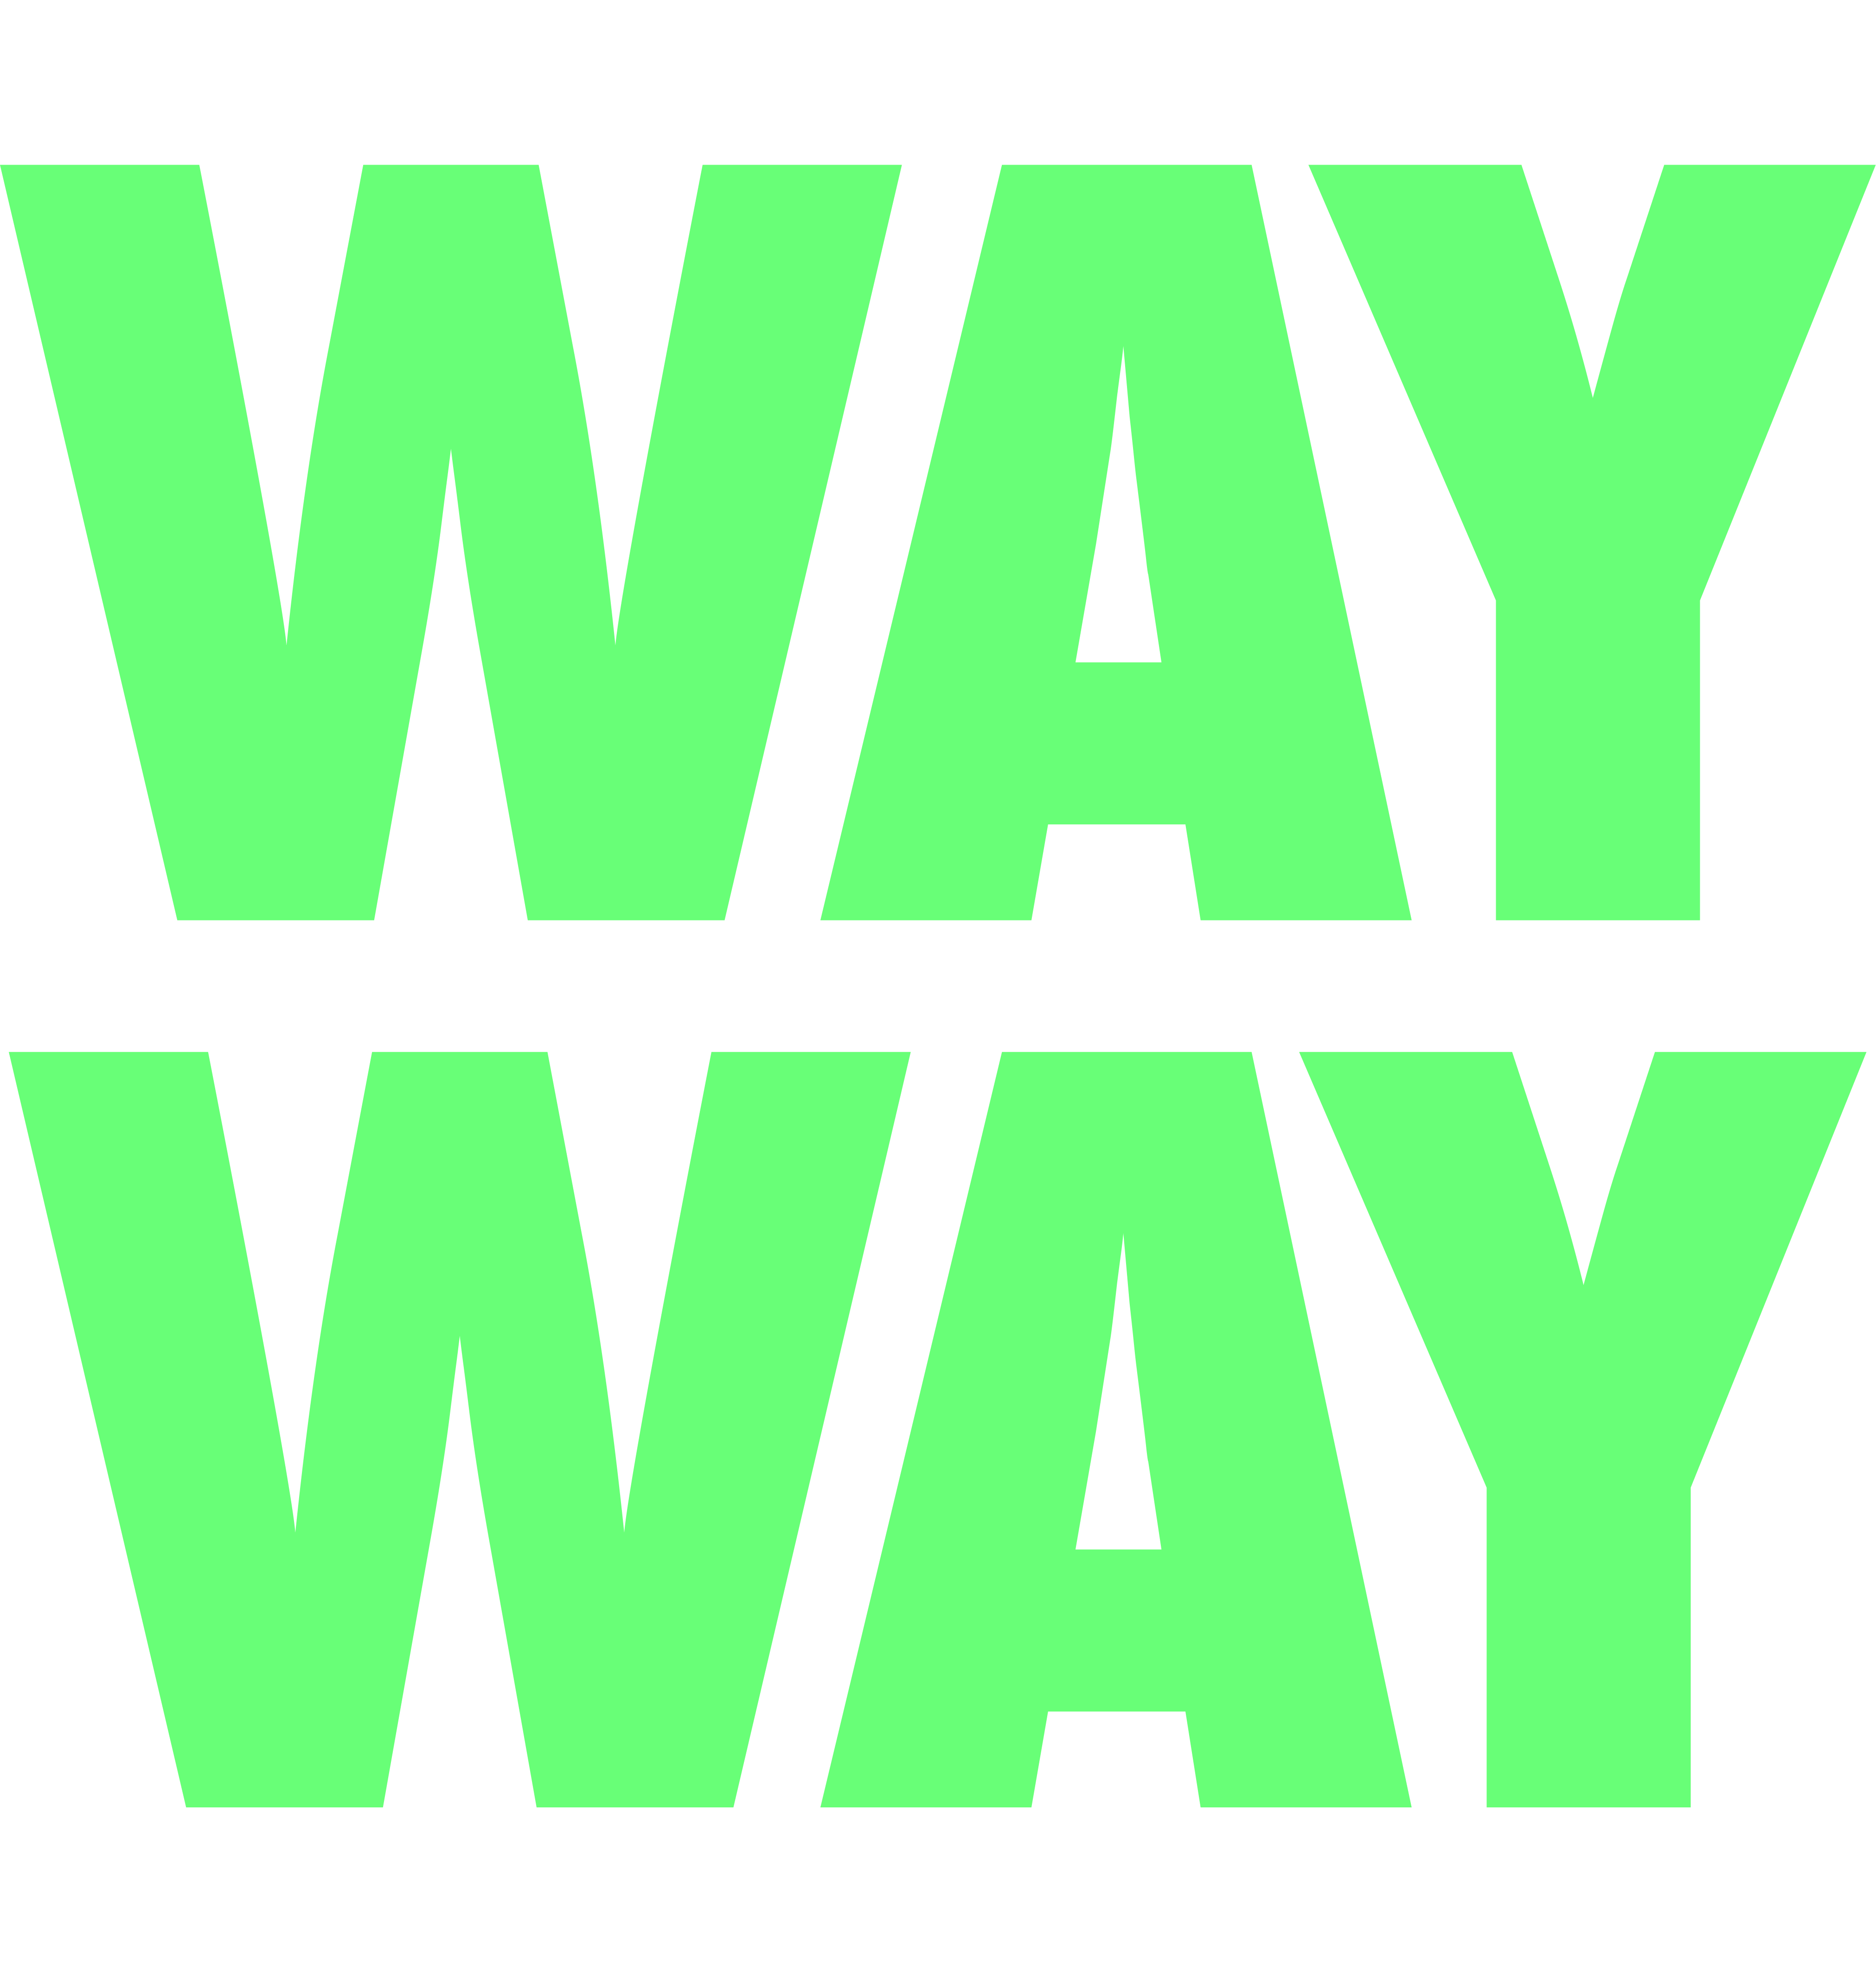 Edvard-Scott-WAYWAY